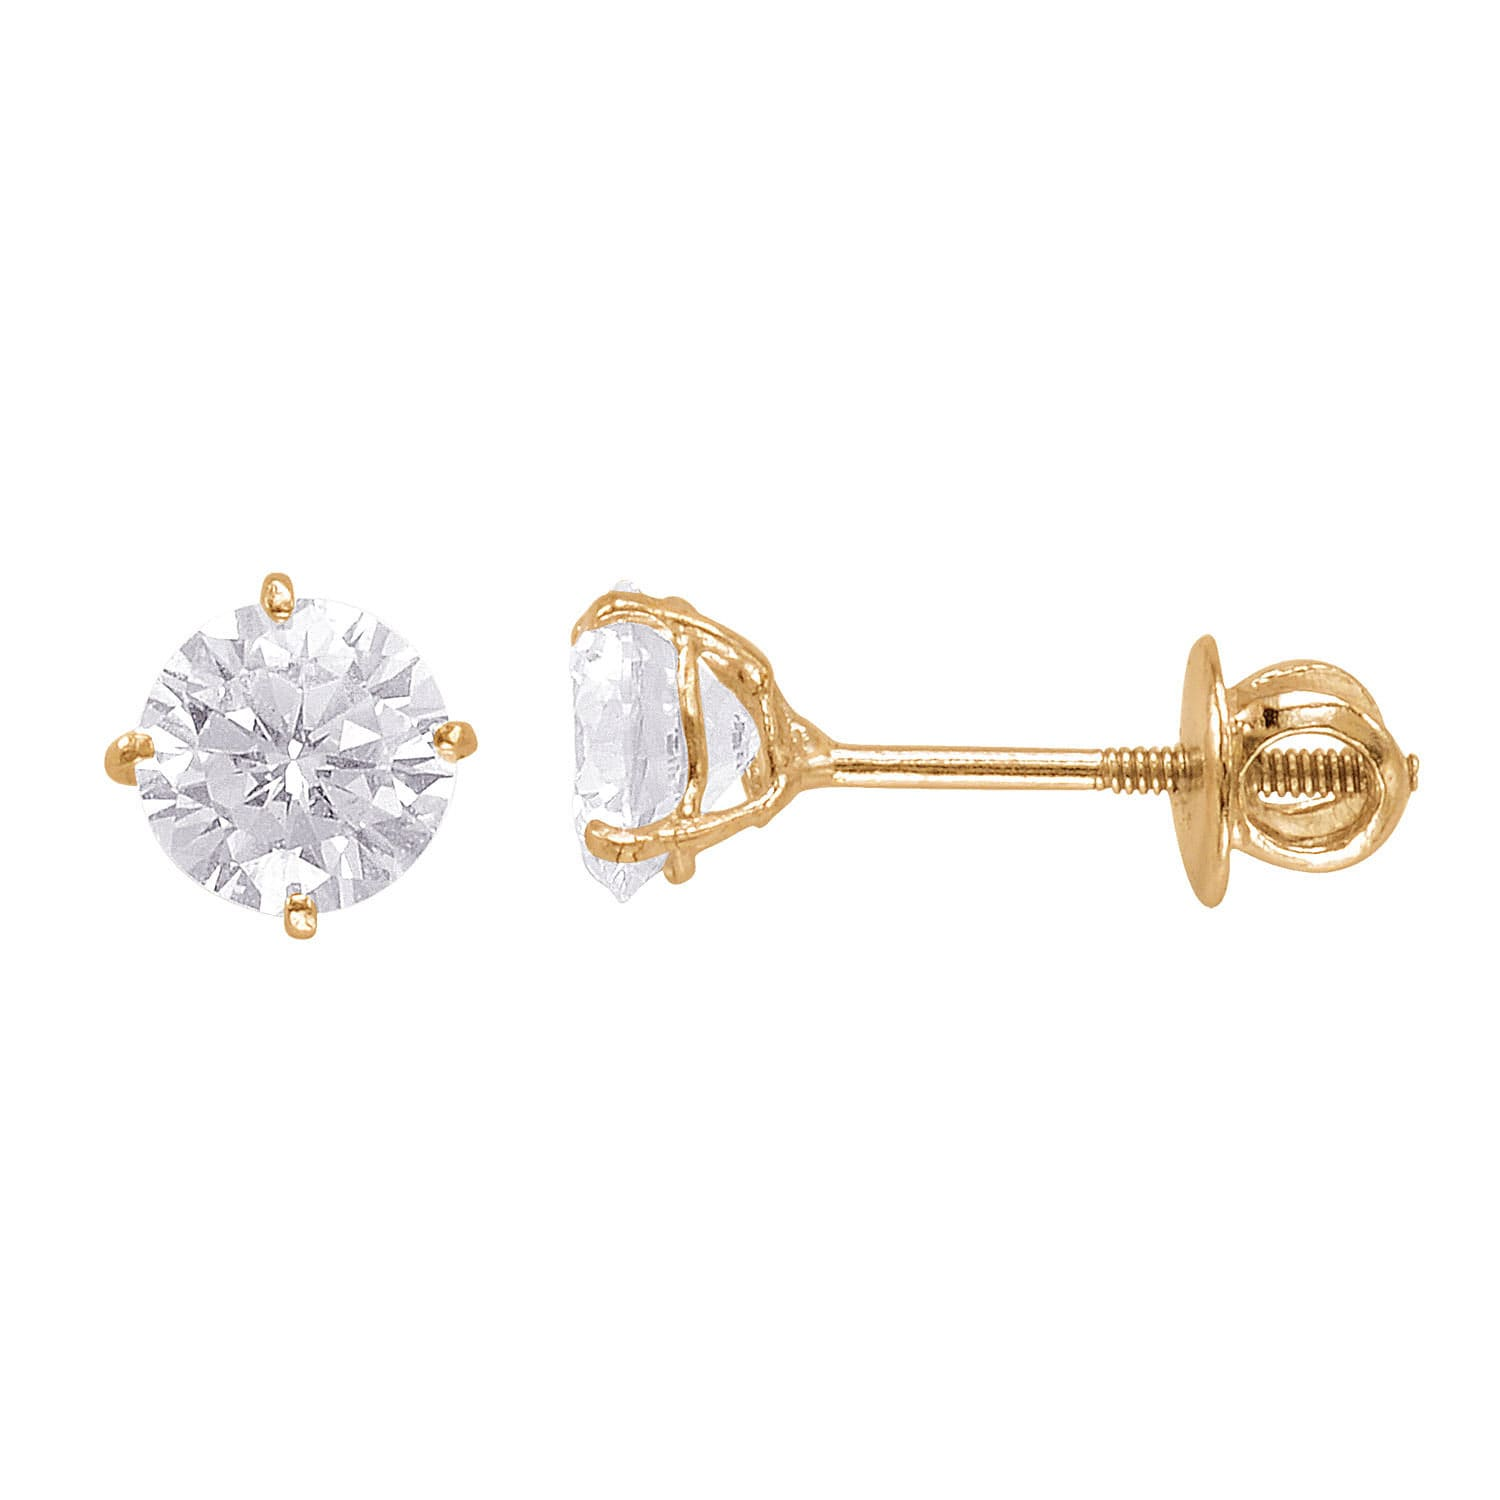 jewelry extra pushback millimeters post yellow stud gold long earrings ball amazon icedtime dp mm com